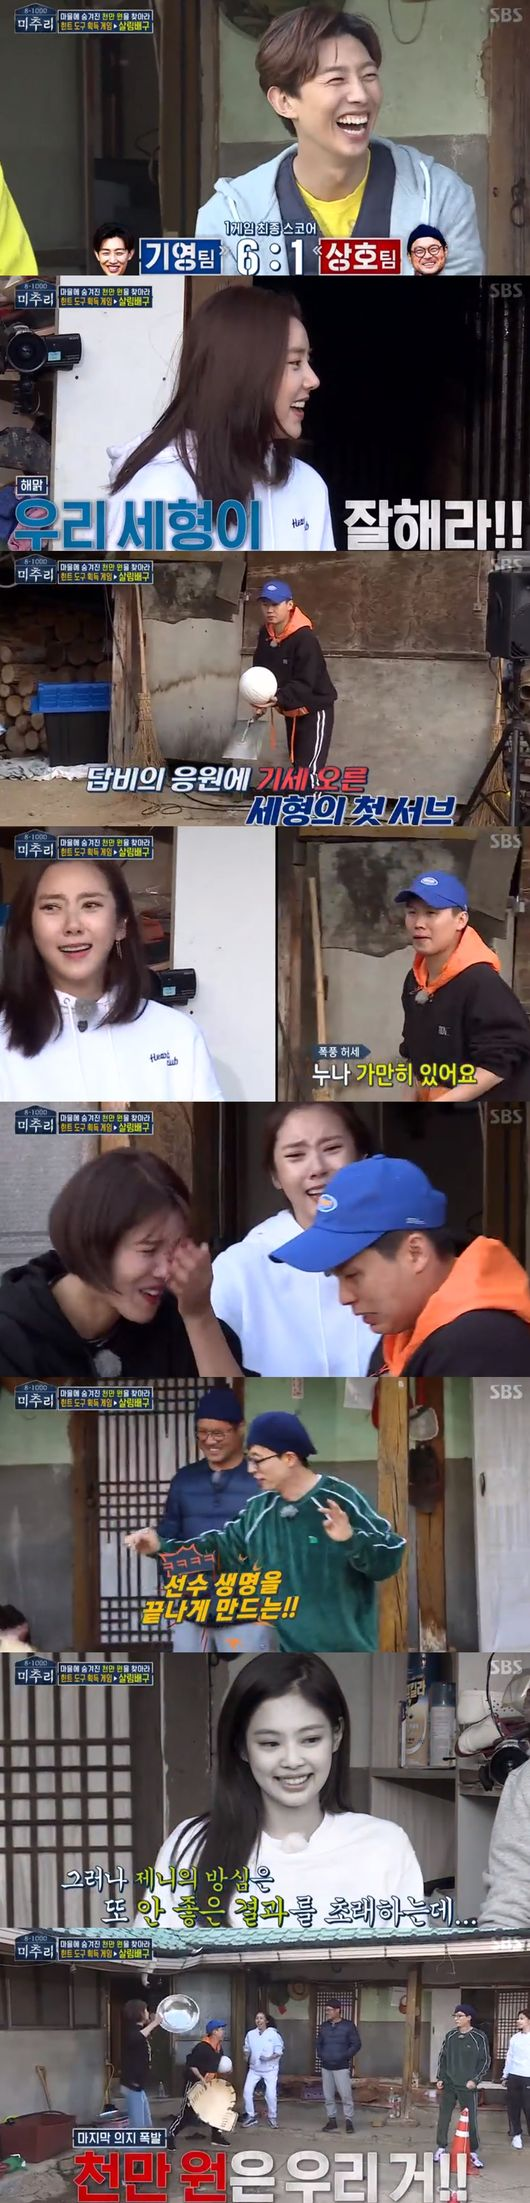 <p> Reasoning is more fun than the members of the arts inspired a big laugh.</p><p>SBS 6-part pilot 'Michu and 8-1000'16, first broadcast. Yoo Jae-Suk, including Black, Pink, Jenny, Kim Sang-Ho, special effects, Jang Doyeon, including 8 of their countryside village hidden in the mystery secret track '24 hours countryside mystery art'.</p><p>Jenny with the countryside in the mountains. What do I do? Money How can I do?La and smiled.</p><p>Jenny appeared to Yang Se-hyeong is the next spot for men to look into more laughter.</p><p>Yoo Jae-Suk is all of the bags returned may require you to be sweets are all seized,he said to any number of effects frustrated.</p><p>Since the members arrive at the hostel.</p><p>Yoo Jae-Suk members of the mission explained. Michu and hidden in the money, only had to find. In advance, members of the self-exacted goods, only to find helpful hints. Million if you find the company and of the allocation is not fully able to bring.</p><p>Self-sufficient at lunch time. Son Dam-bi with field vegetables in Canada in SONGJIANG to a thousand, but if what you want to do?he asked. SONGJIANG and want to eat,he replied.</p><p>Kim Sang-Ho and Jang Doyeon is the sweet potato casserole had been in the field a hint a red stone was found.</p><p>River swimming in the river fishing..... red stone found. Set the clock and have been and other members cheat and red stone secretly pocketed. The river is red with a hammer stone broke. The Elevator open button.</p><p>But other members of the river pool, the behavior of everyone watching. Any direction and is also strong in the red stone was obtained.</p><p>River pool, I really stupid is too public a place in it. I only can get the hint at all. . . And lamented.</p><p>Pre-sliced bread in pocketed Jenny in the kitchen had a toaster to discover hints to find. Baked bread in the H O T word is written.</p><p>After lunch, hint tool for the game began. Game, Yang Se-hyeong this Jang Doyeon fartto continue to play to laugh, I found myself. Jang Doyeon this tomorrow in the morning a fart, in pants up to show you.to the ego.</p><p>Salim governance was not only athletic without Jang Doyeon this continued Not for one team, Son Dam-bi the anger exploded. Yang Se-hyeong this one is only mad at one,he said to laughter, I found myself. Jang Doyeon is a volleyball that was. Yoo Jae-Suk, exercise is really for,he said.</p><p>Engage in the end Yang Se-hyeong Jang Doyeon Son Dam-bi Kim Sang-Ho team live worship from victory. These are the river of hammer copy. Mutual Team 4 - hammeracquired.</p>